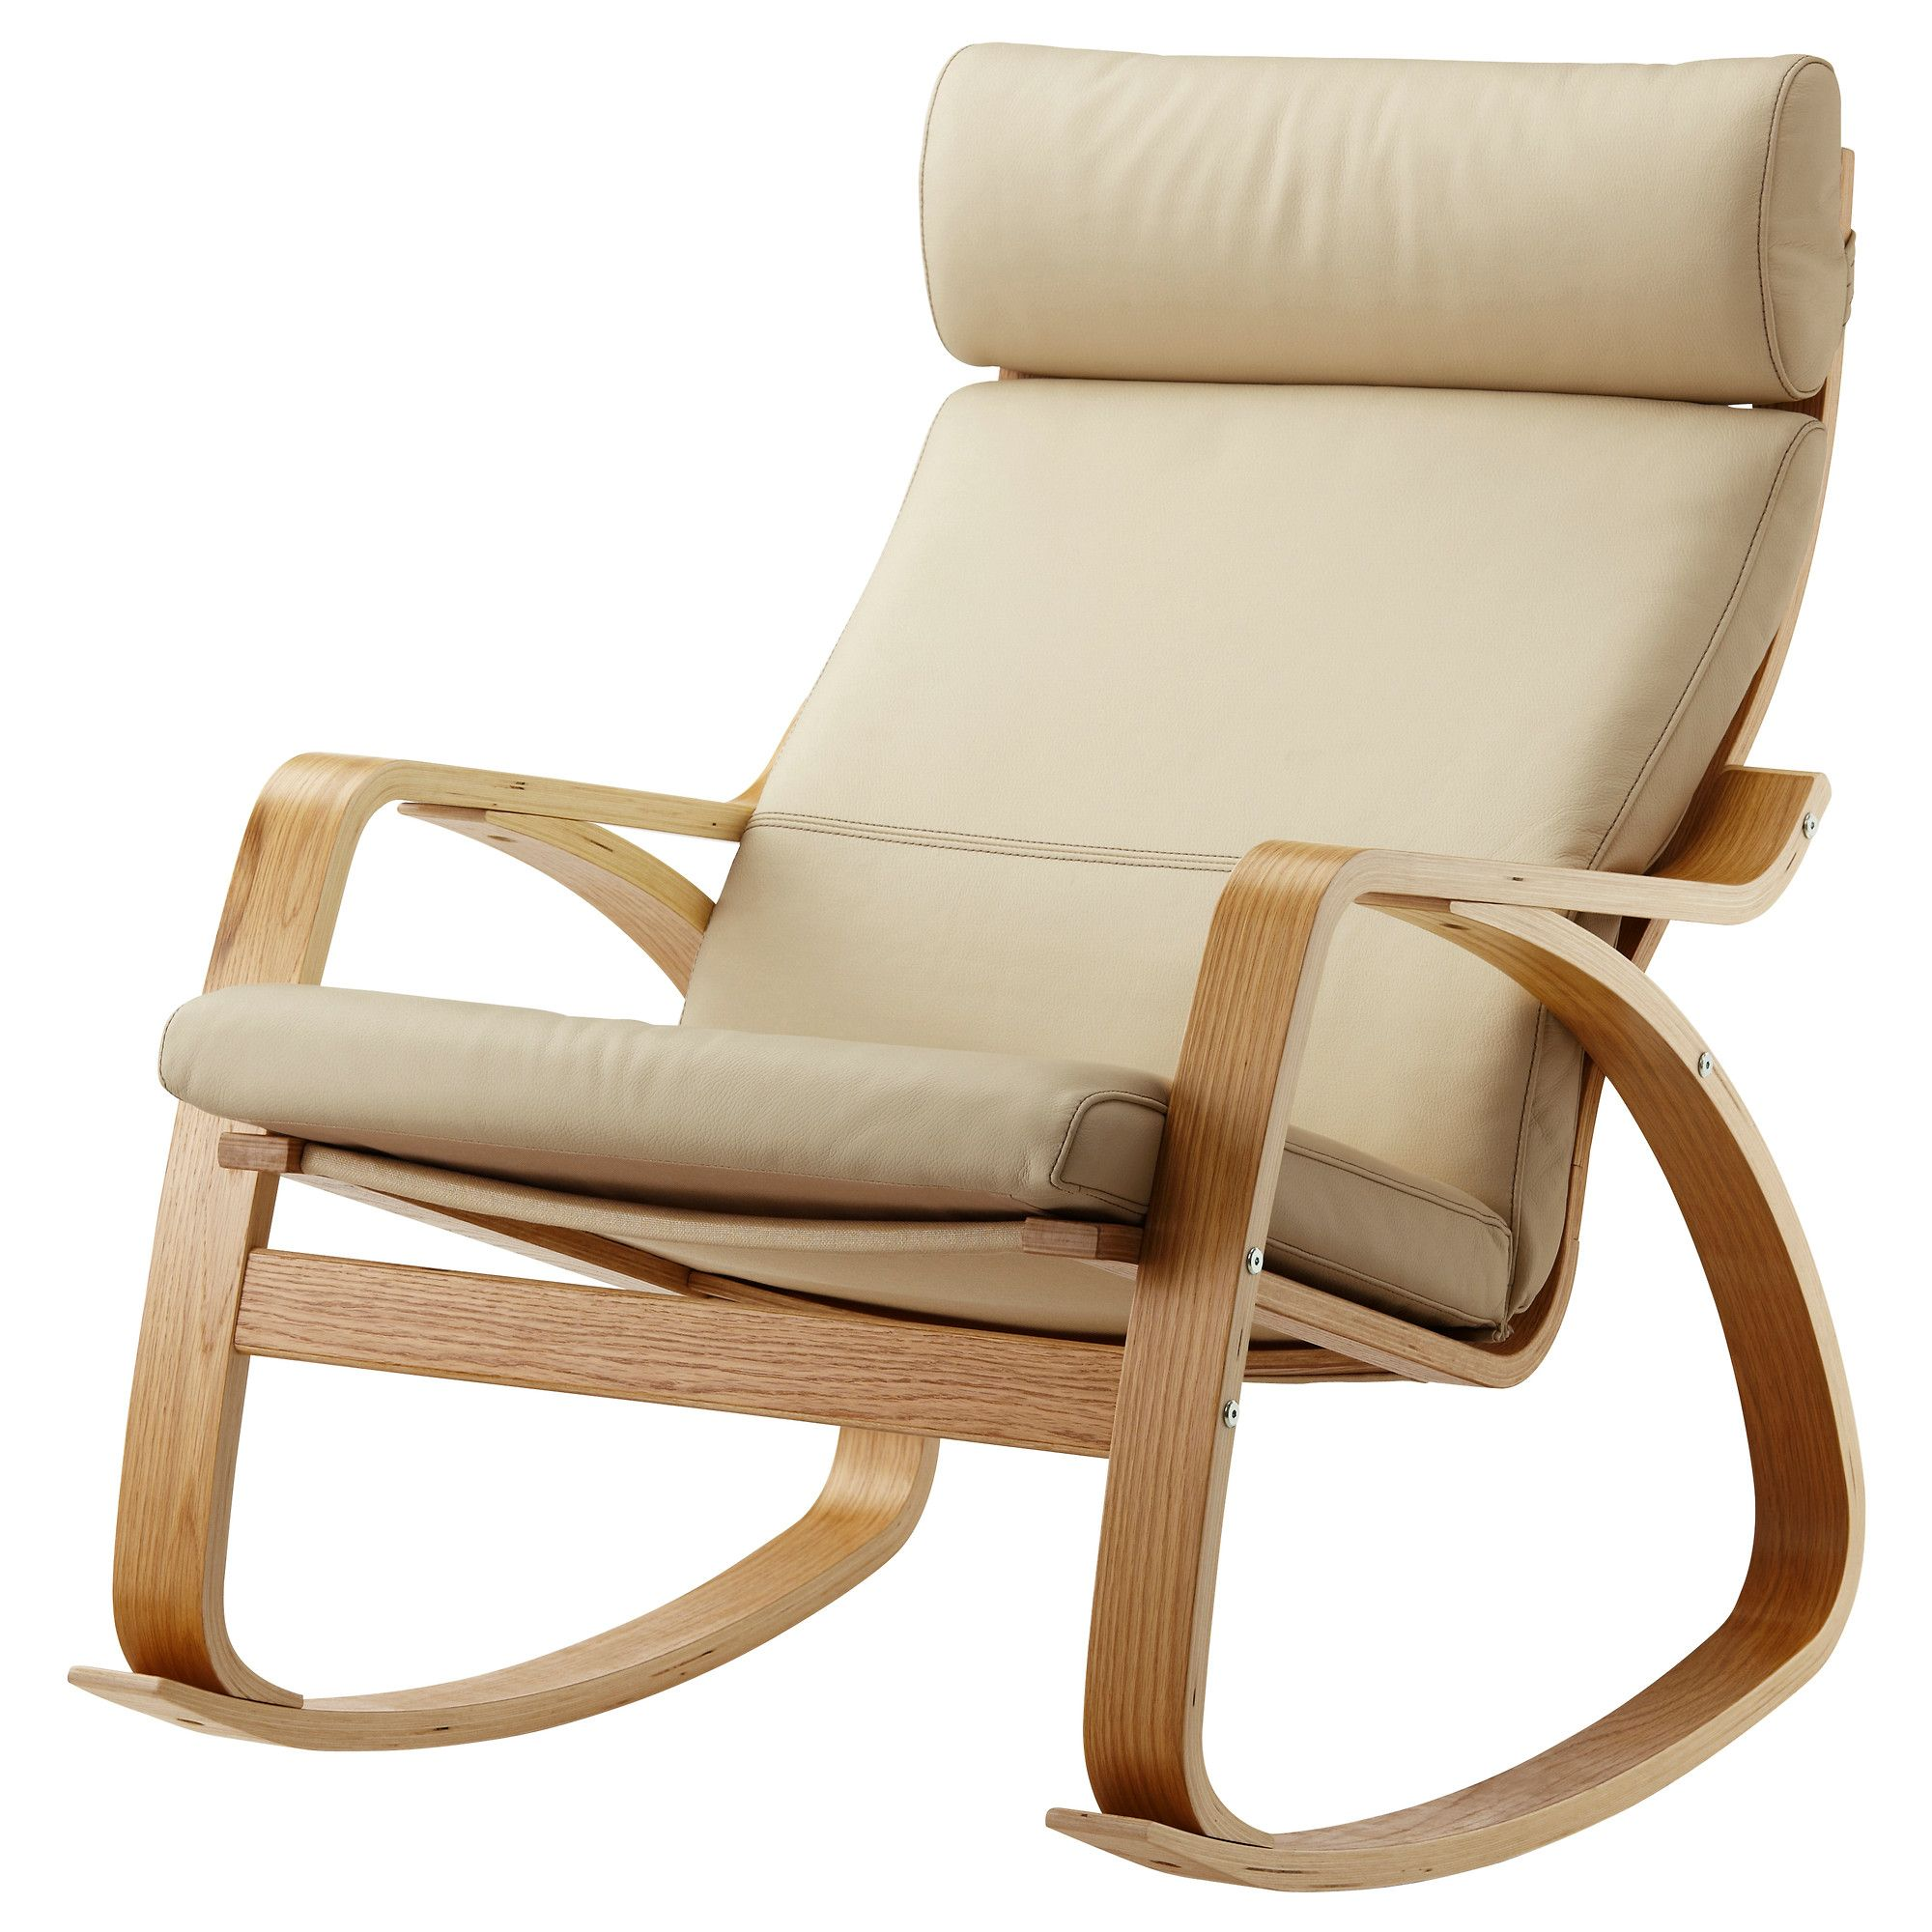 Furniture Inspiration Swish Modern Rocking Chairs With Beige Seat Added  Unique Base Legs For Contemporary Reading Chair Ikea Designs Peachy Reading  Chair  ...